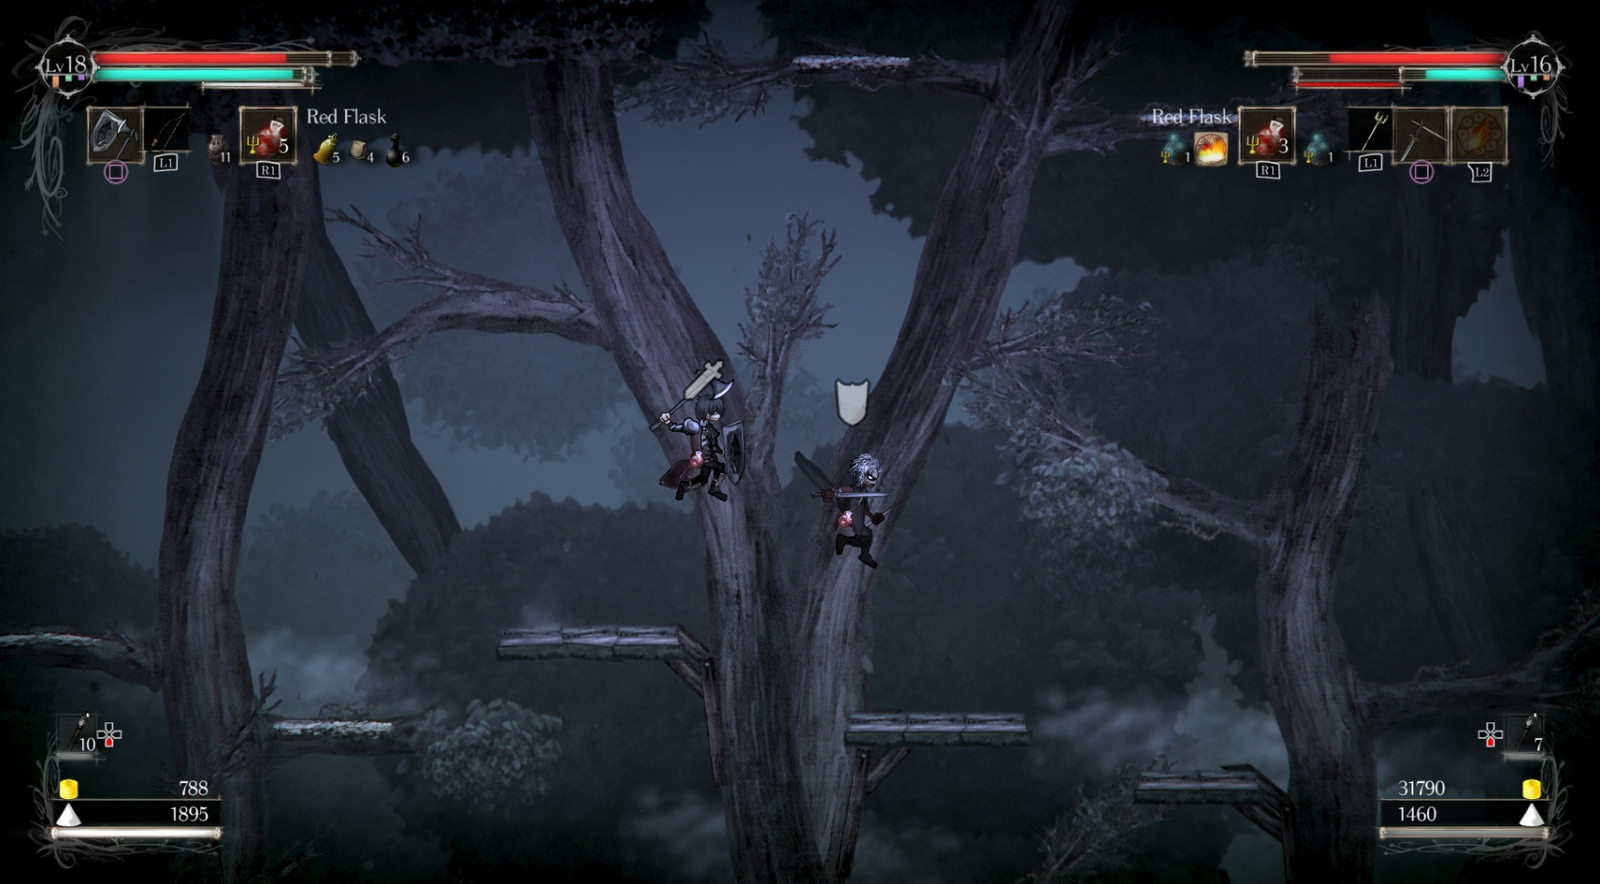 A typical platforming sequence in Salt and Sanctuary